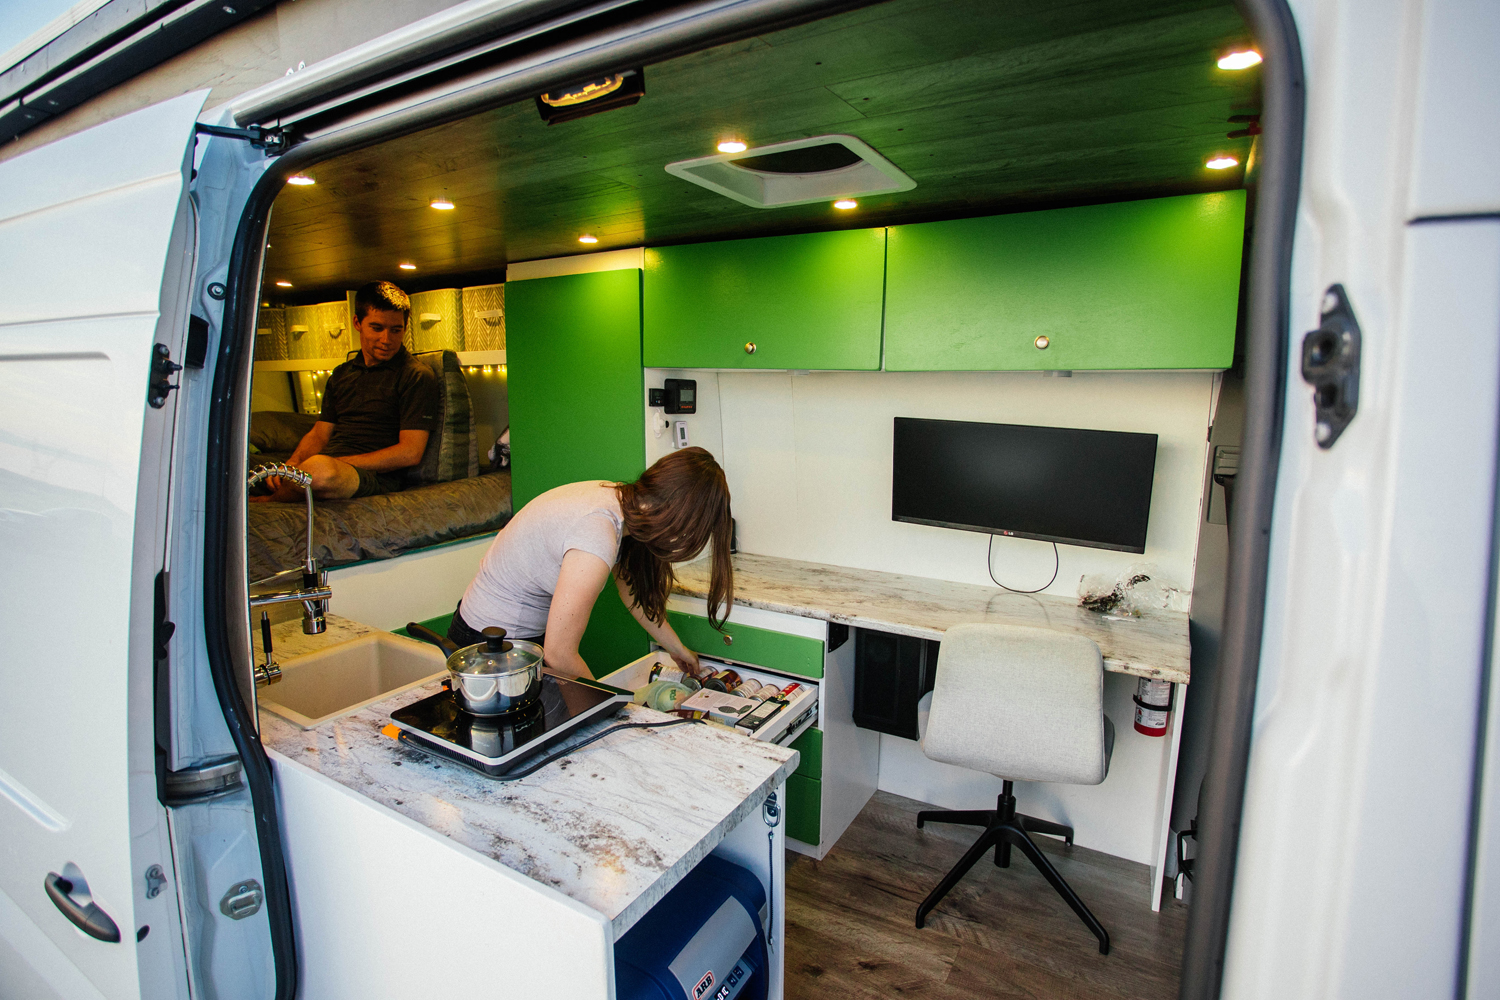 V&M Van Life designed by Ray Outfitted